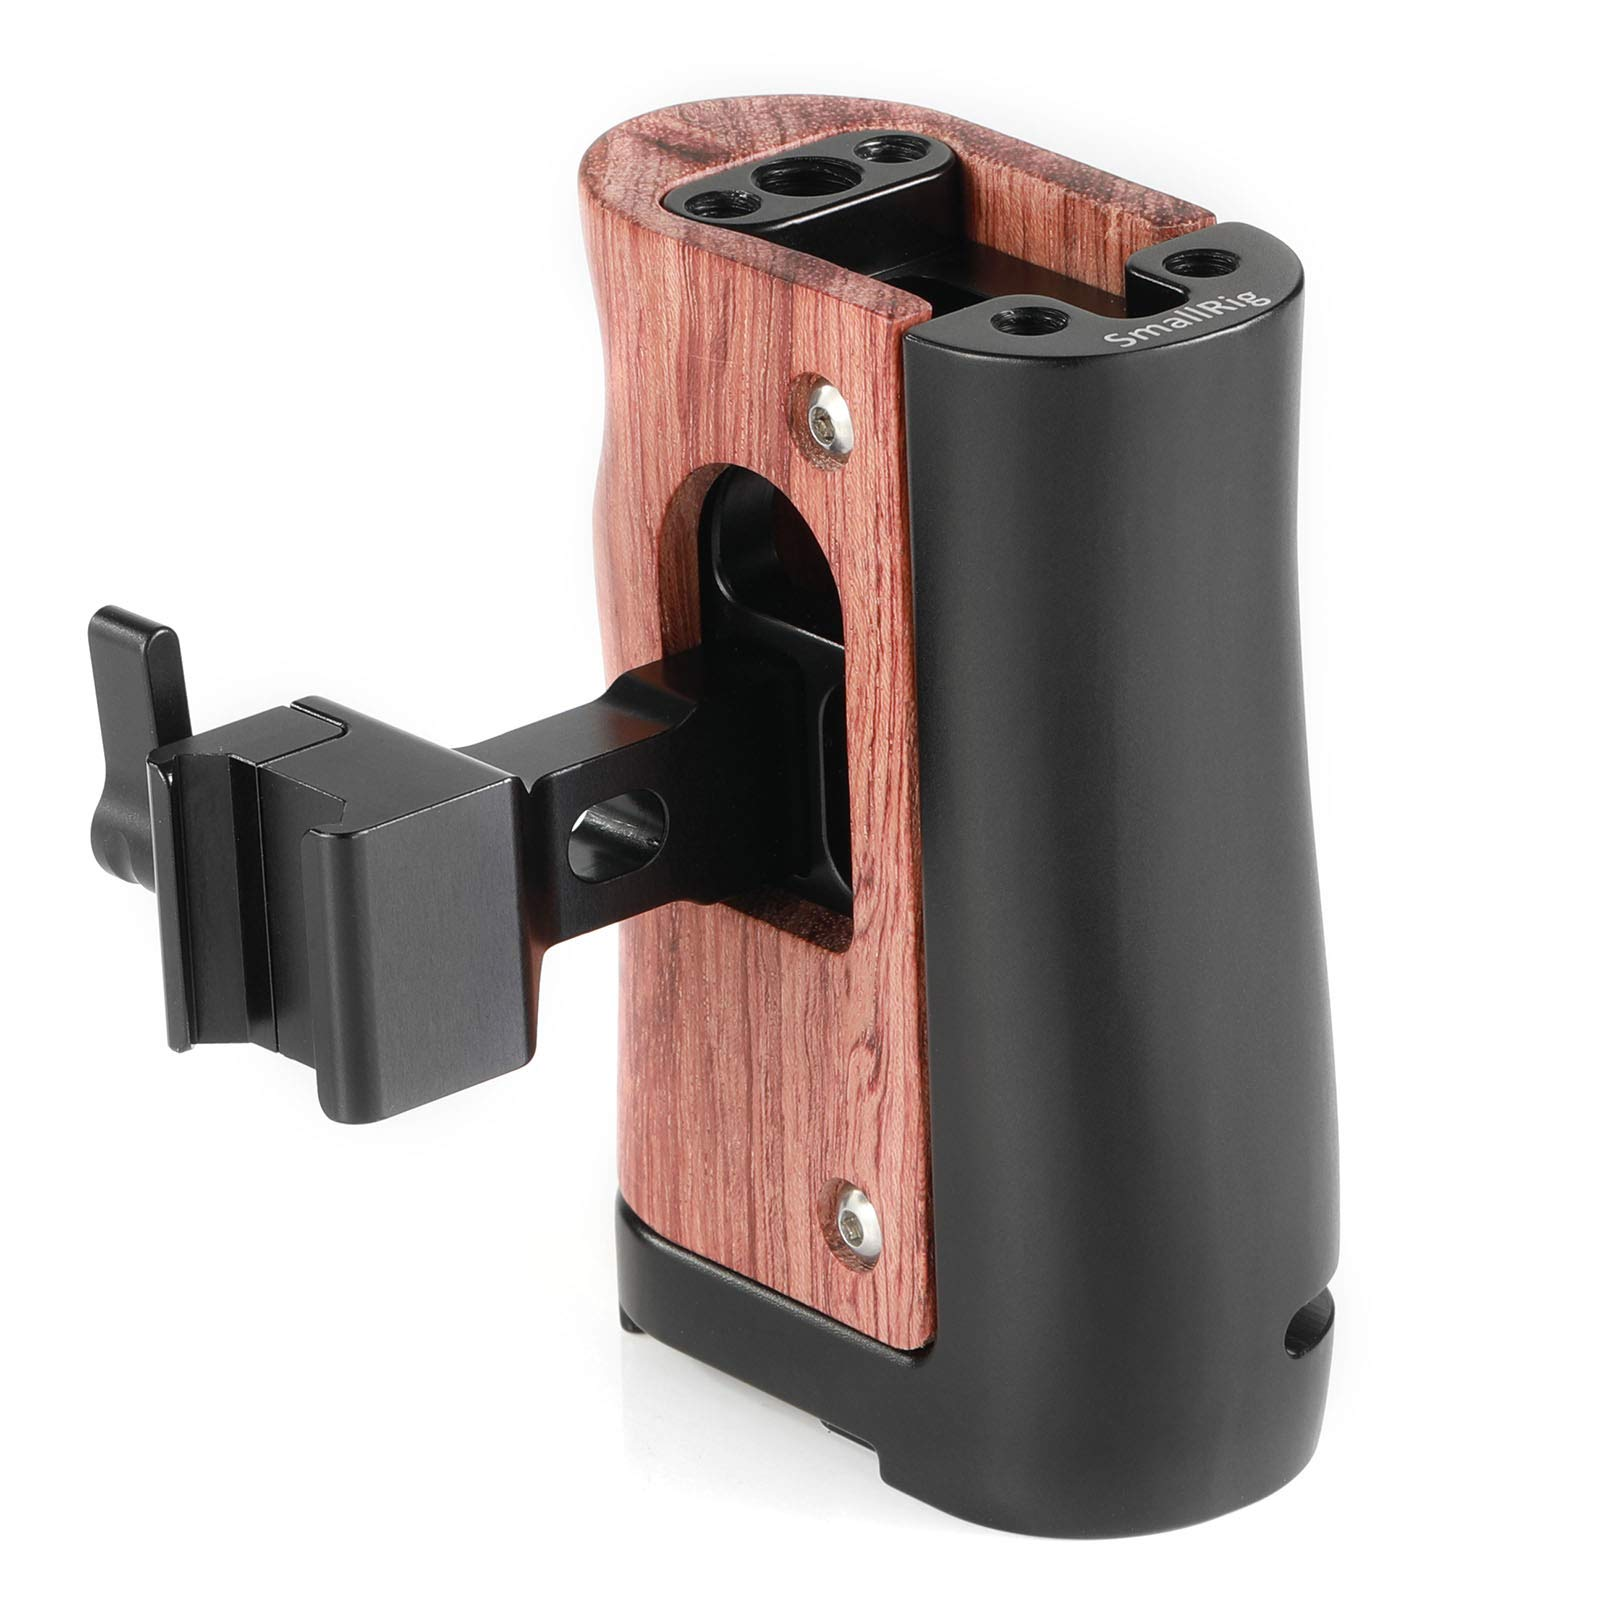 SMALLRIG NATO Handle Wooden Handgrip for BMPCC 4K and Z-CAM E2, Compatible with Samsung T5 SSD - HSN2270 by SMALLRIG